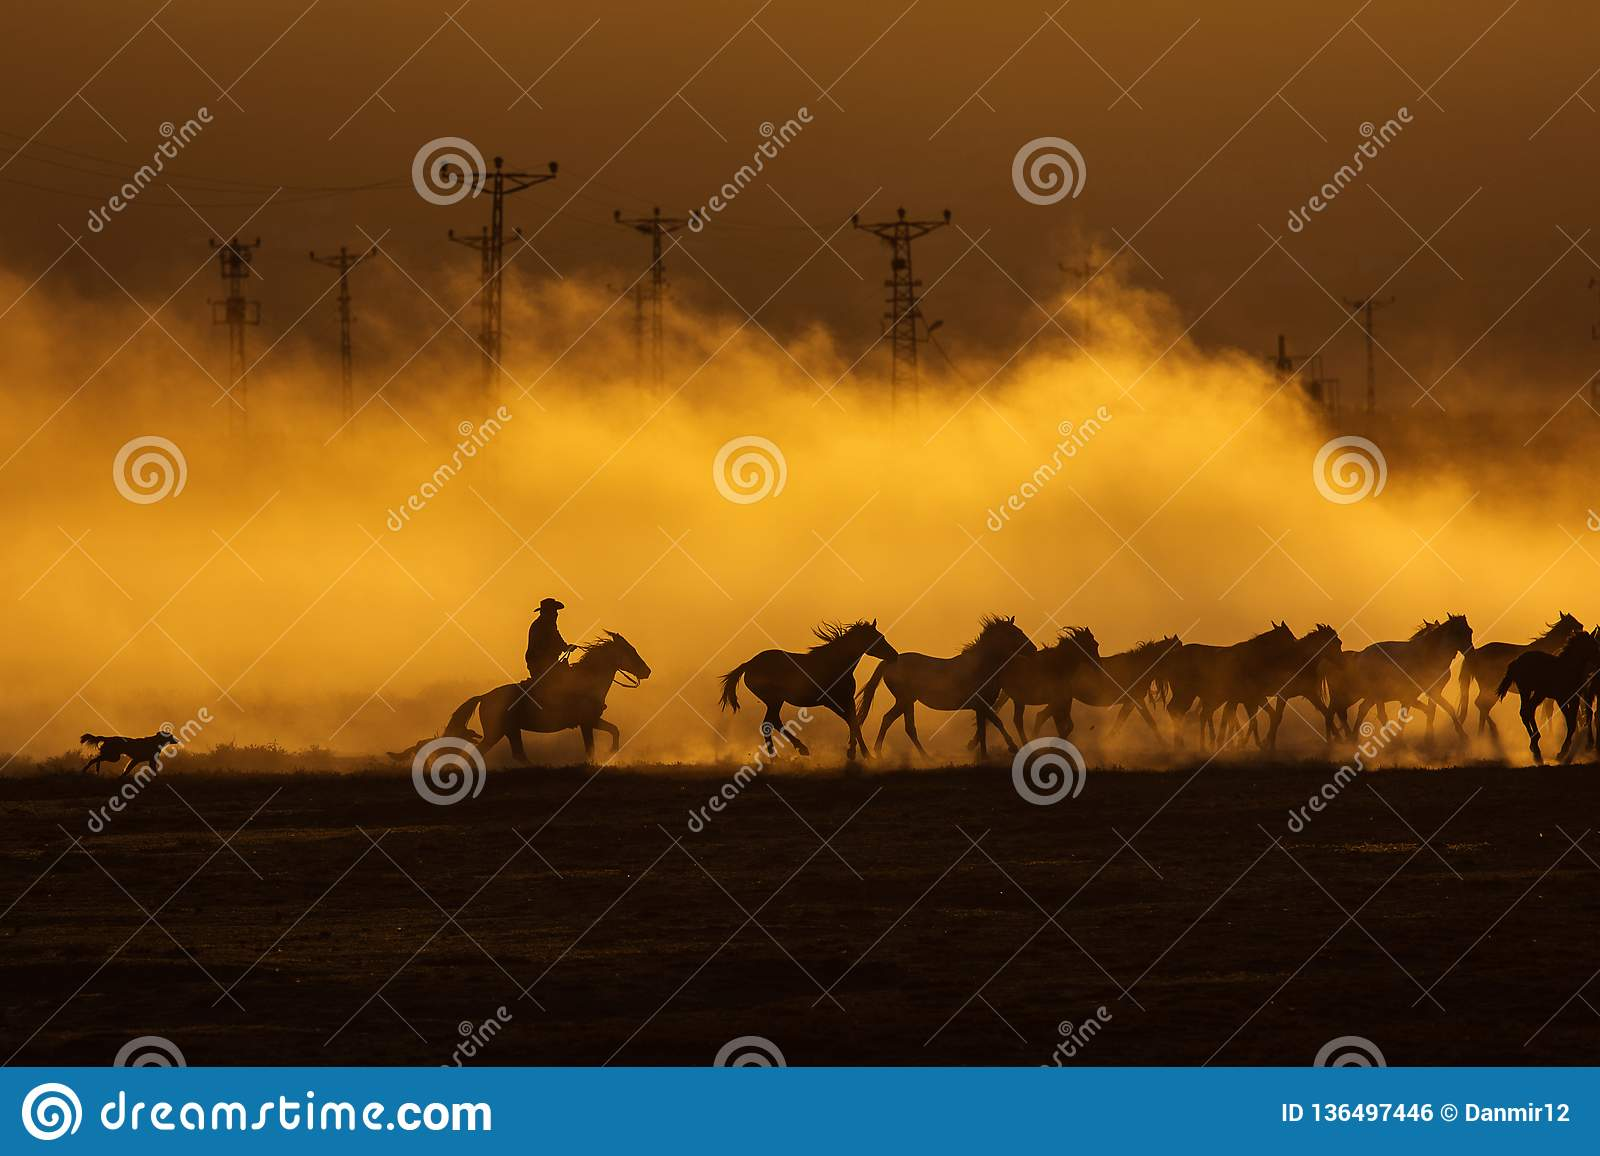 Wild horses leads by a cowboy at sunset with dust in background